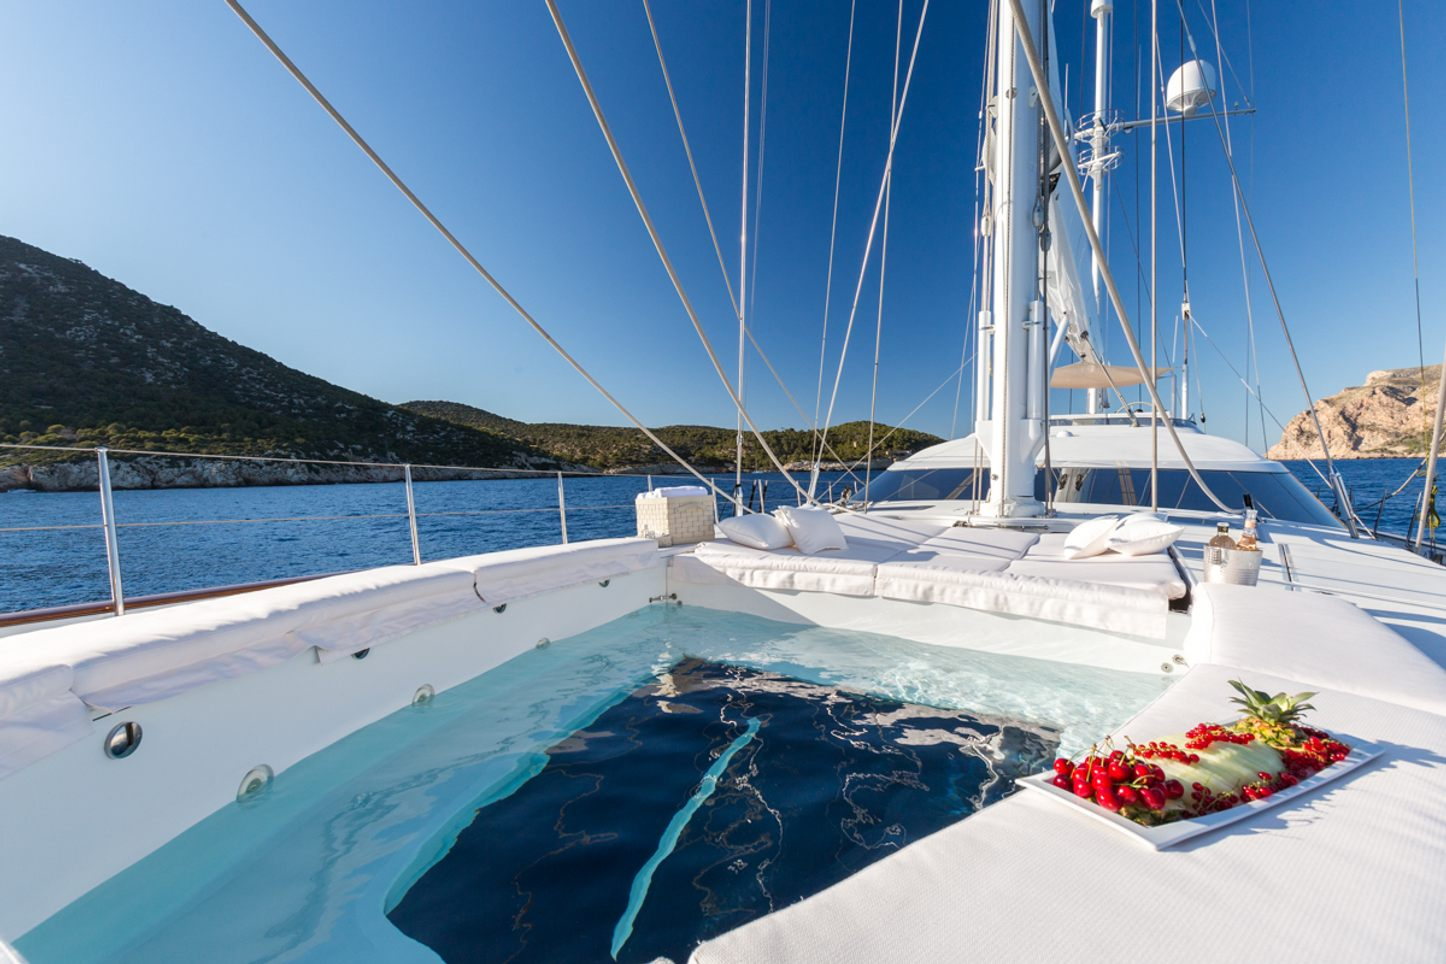 spa pool surrounded by sunpads on the foredeck of sailing yacht Q with platter of fruit